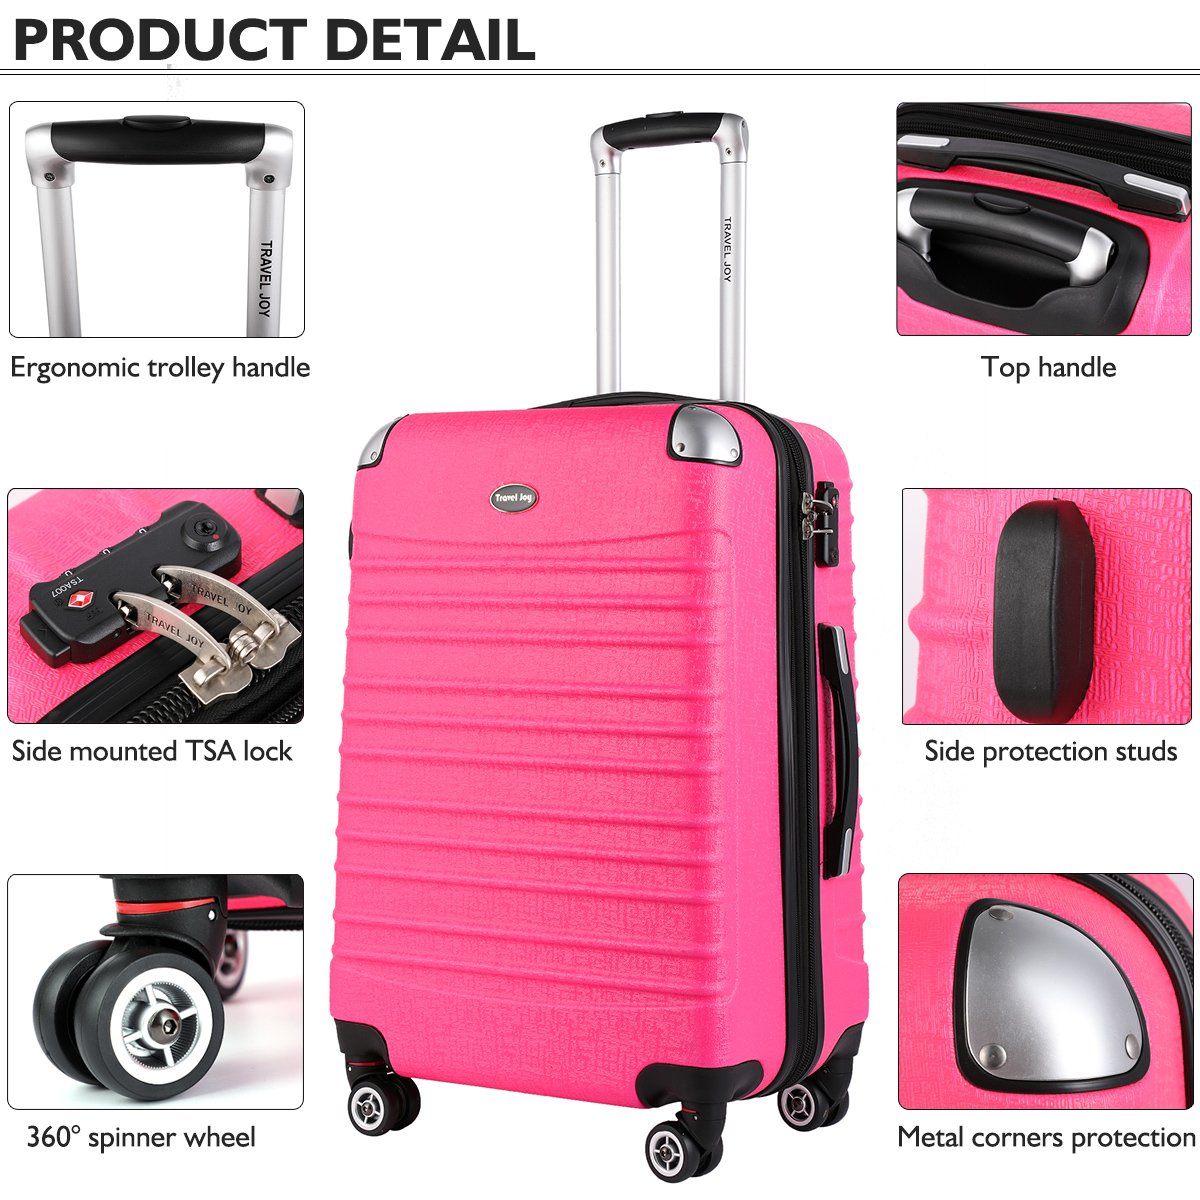 Hardside Carry On Luggage, Lightweight Expandable Spinner Carry Ons TSA Luggage Suitcase, 20 inches (HOT PINK) by Travel Joy (Image #4)